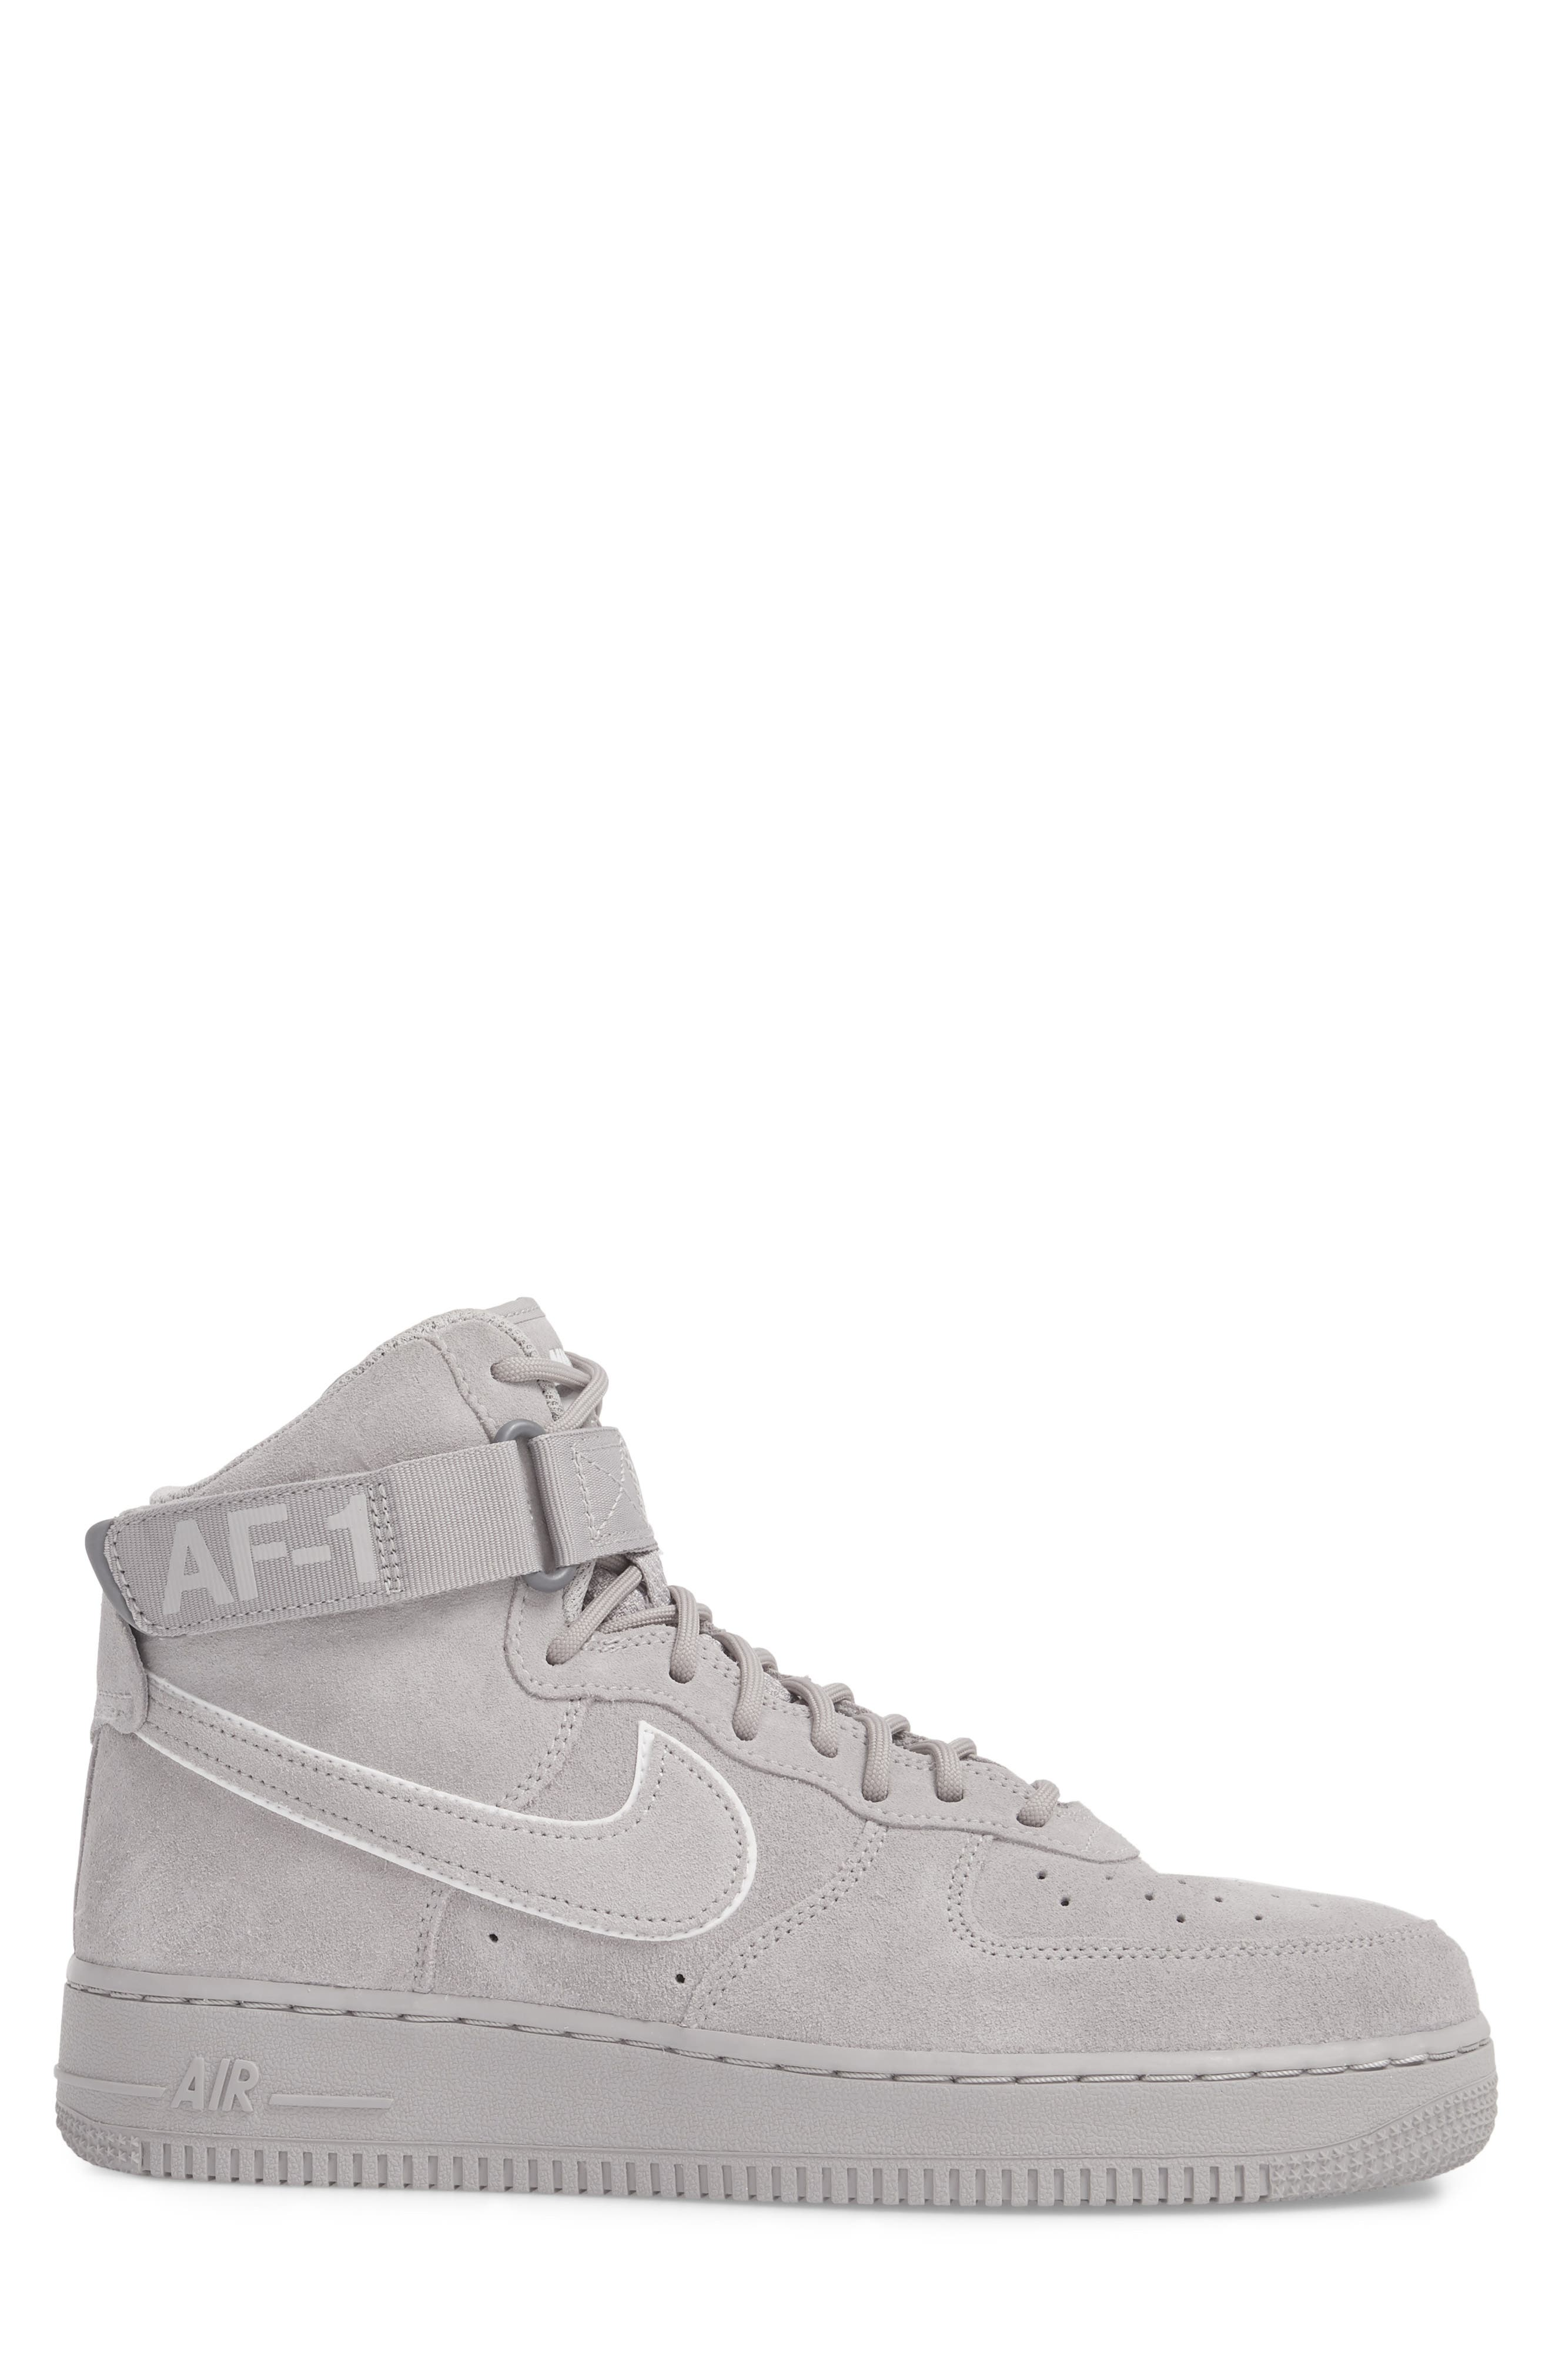 Air Force 1 High '07 LV8 Suede Sneaker,                             Alternate thumbnail 3, color,                             023